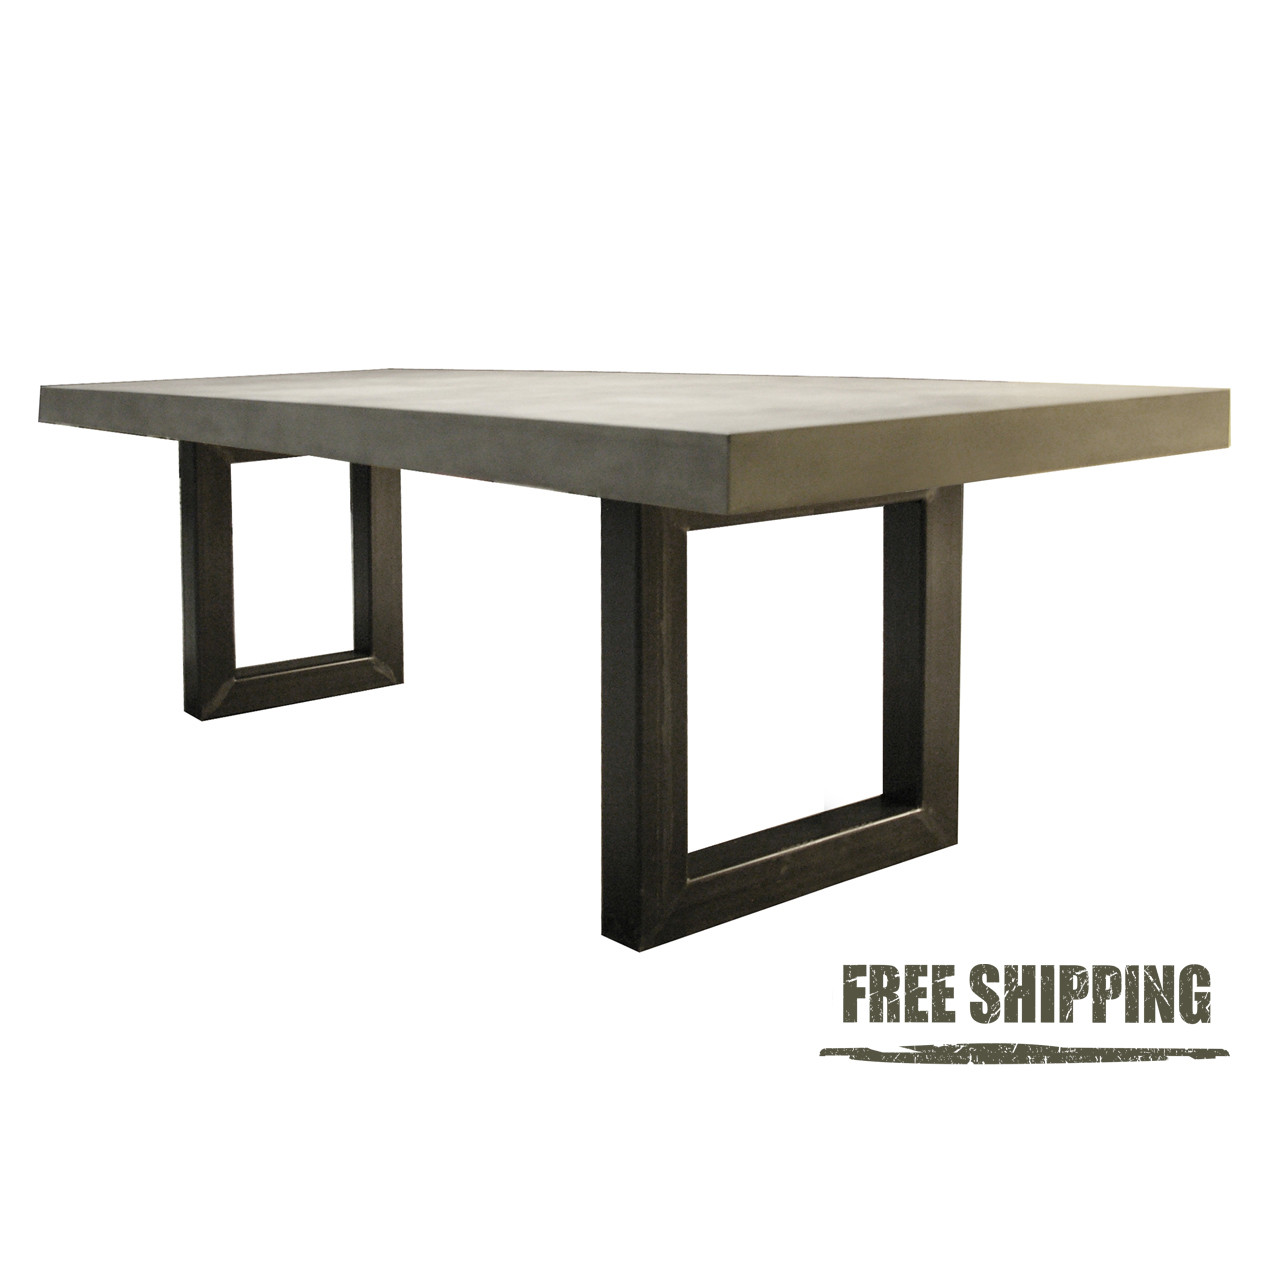 zen concrete dining table dining table. Black Bedroom Furniture Sets. Home Design Ideas